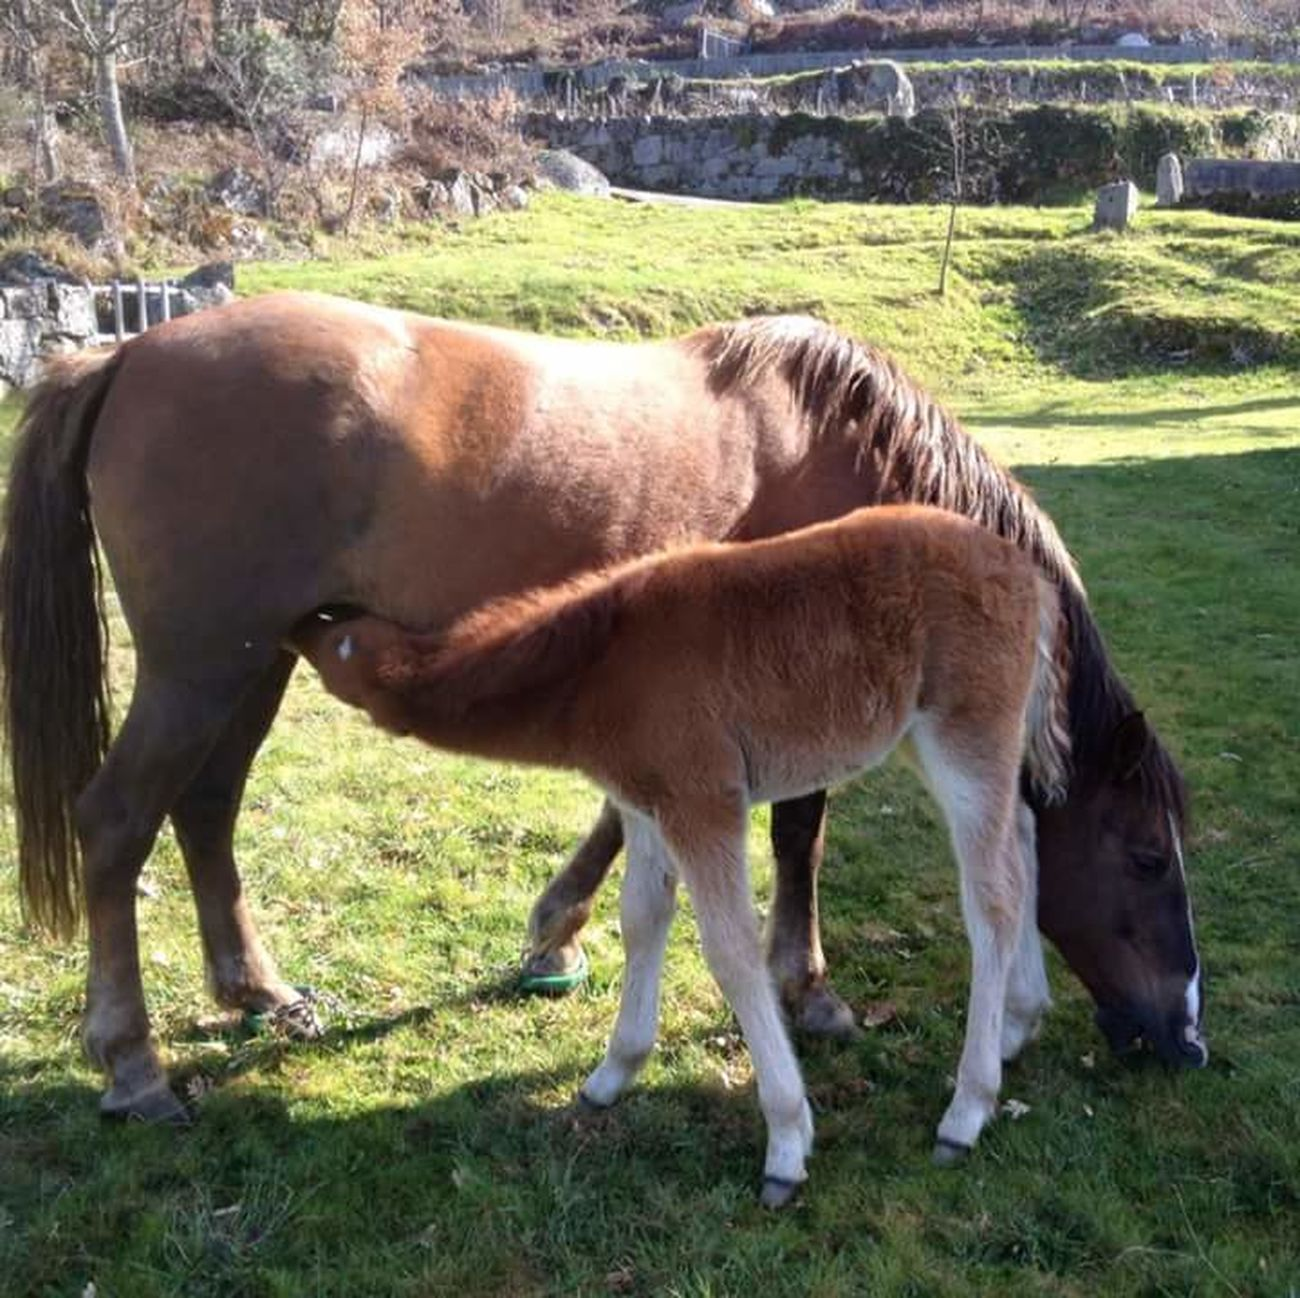 Horse Animal Themes Grass Mammal Sunlight Domestic Animals Field Livestock Brown Foal No People Shadow Grazing Nature Young Animal Herbivorous Mane Day Tree Outdoors